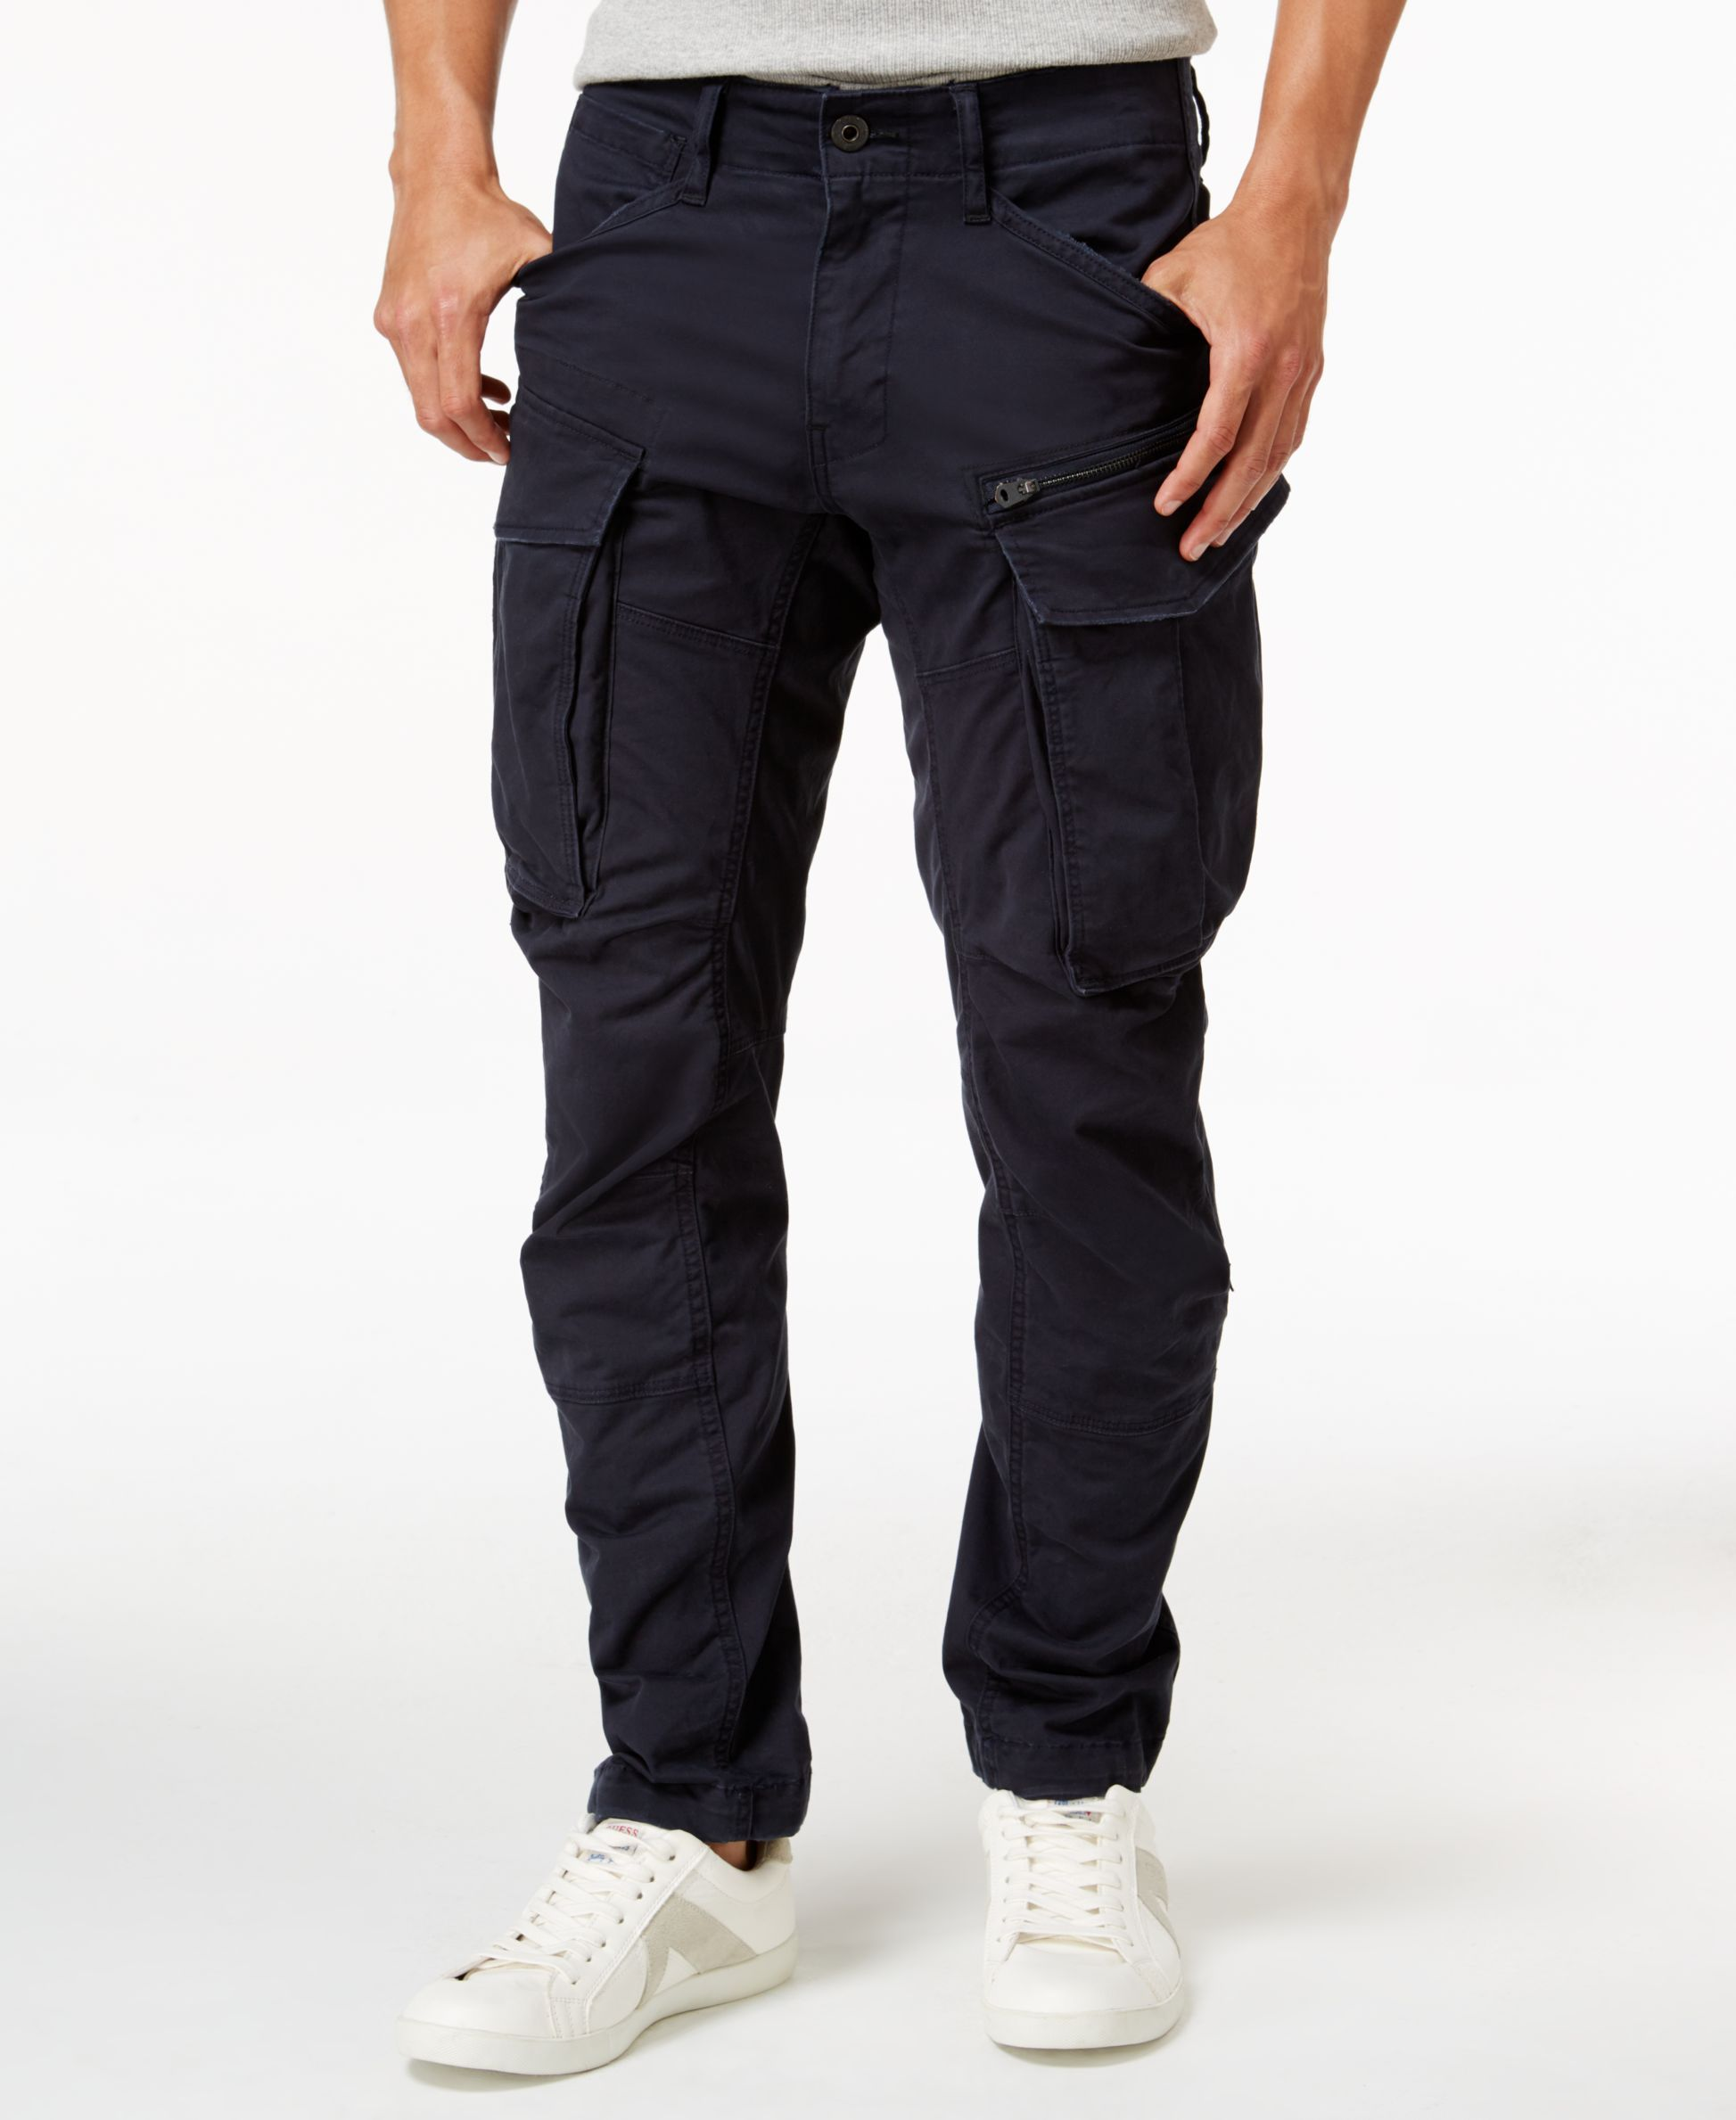 d59c586b0a63 A classic style gets a modern update with these Rovic 3D pants from GStar